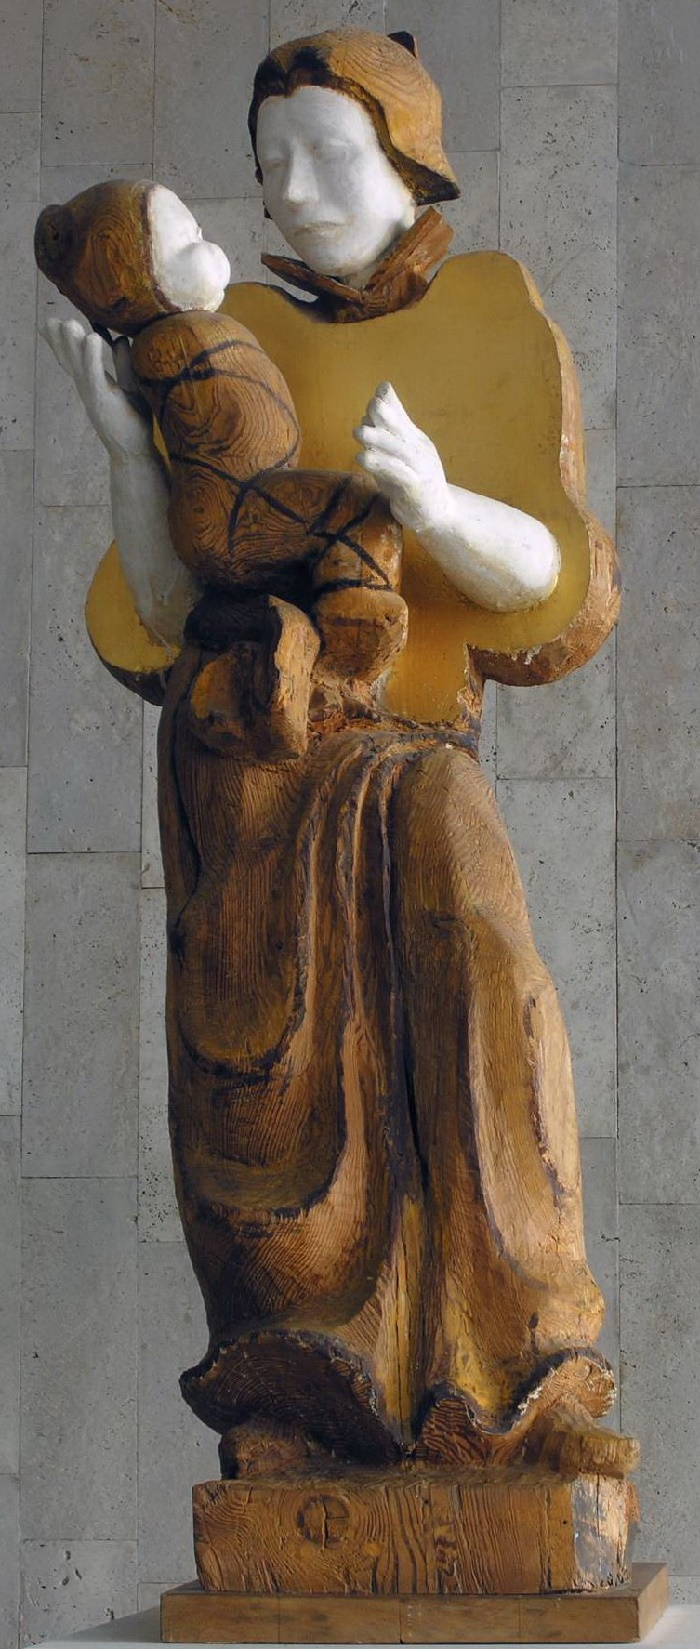 Go and save my trail. 1987. Wood sculpture, gilding, painting